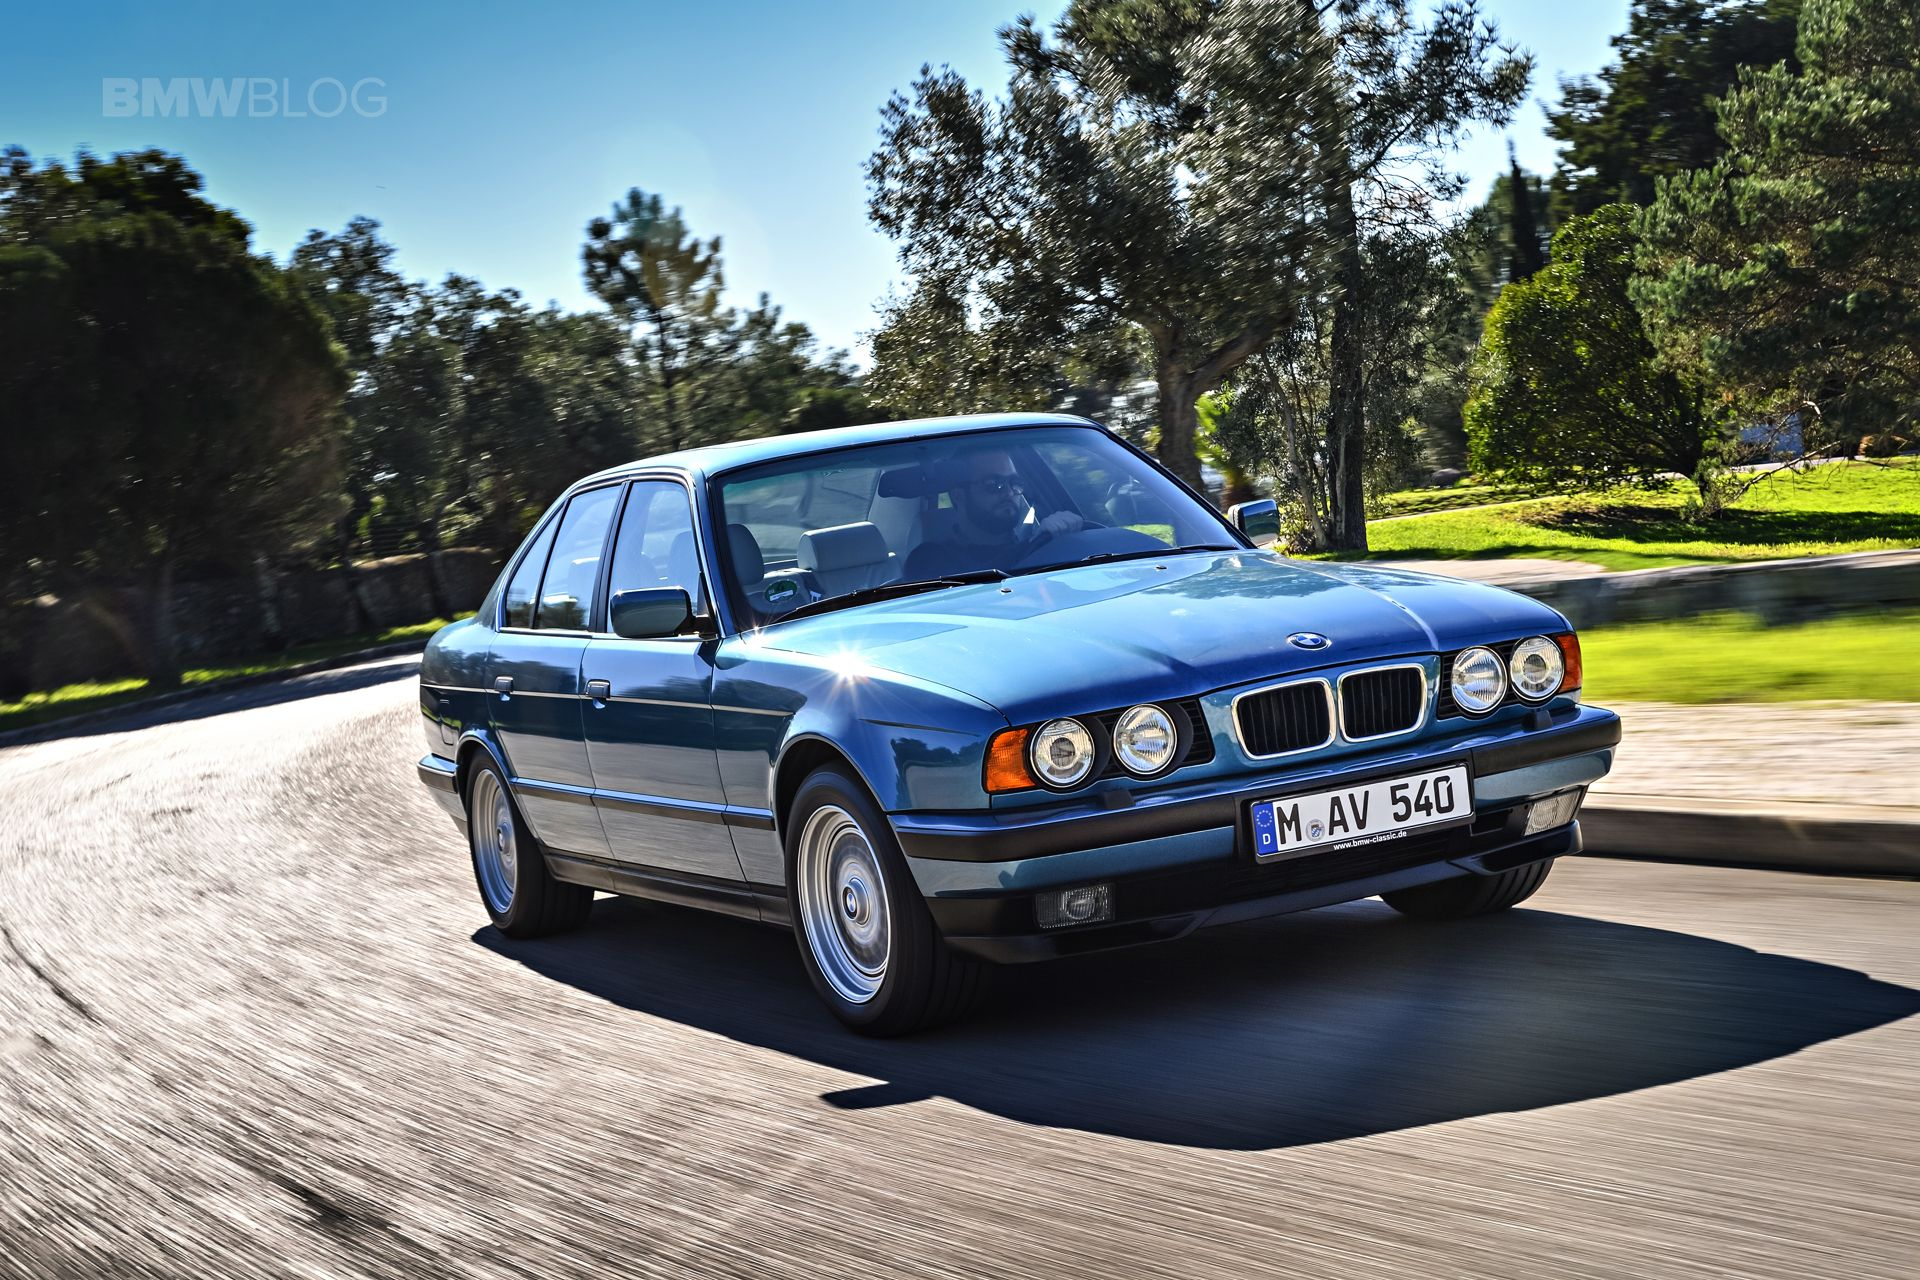 Beautiful Photoshoot With The Bmw E34 5 Series E34 Bmw 1er